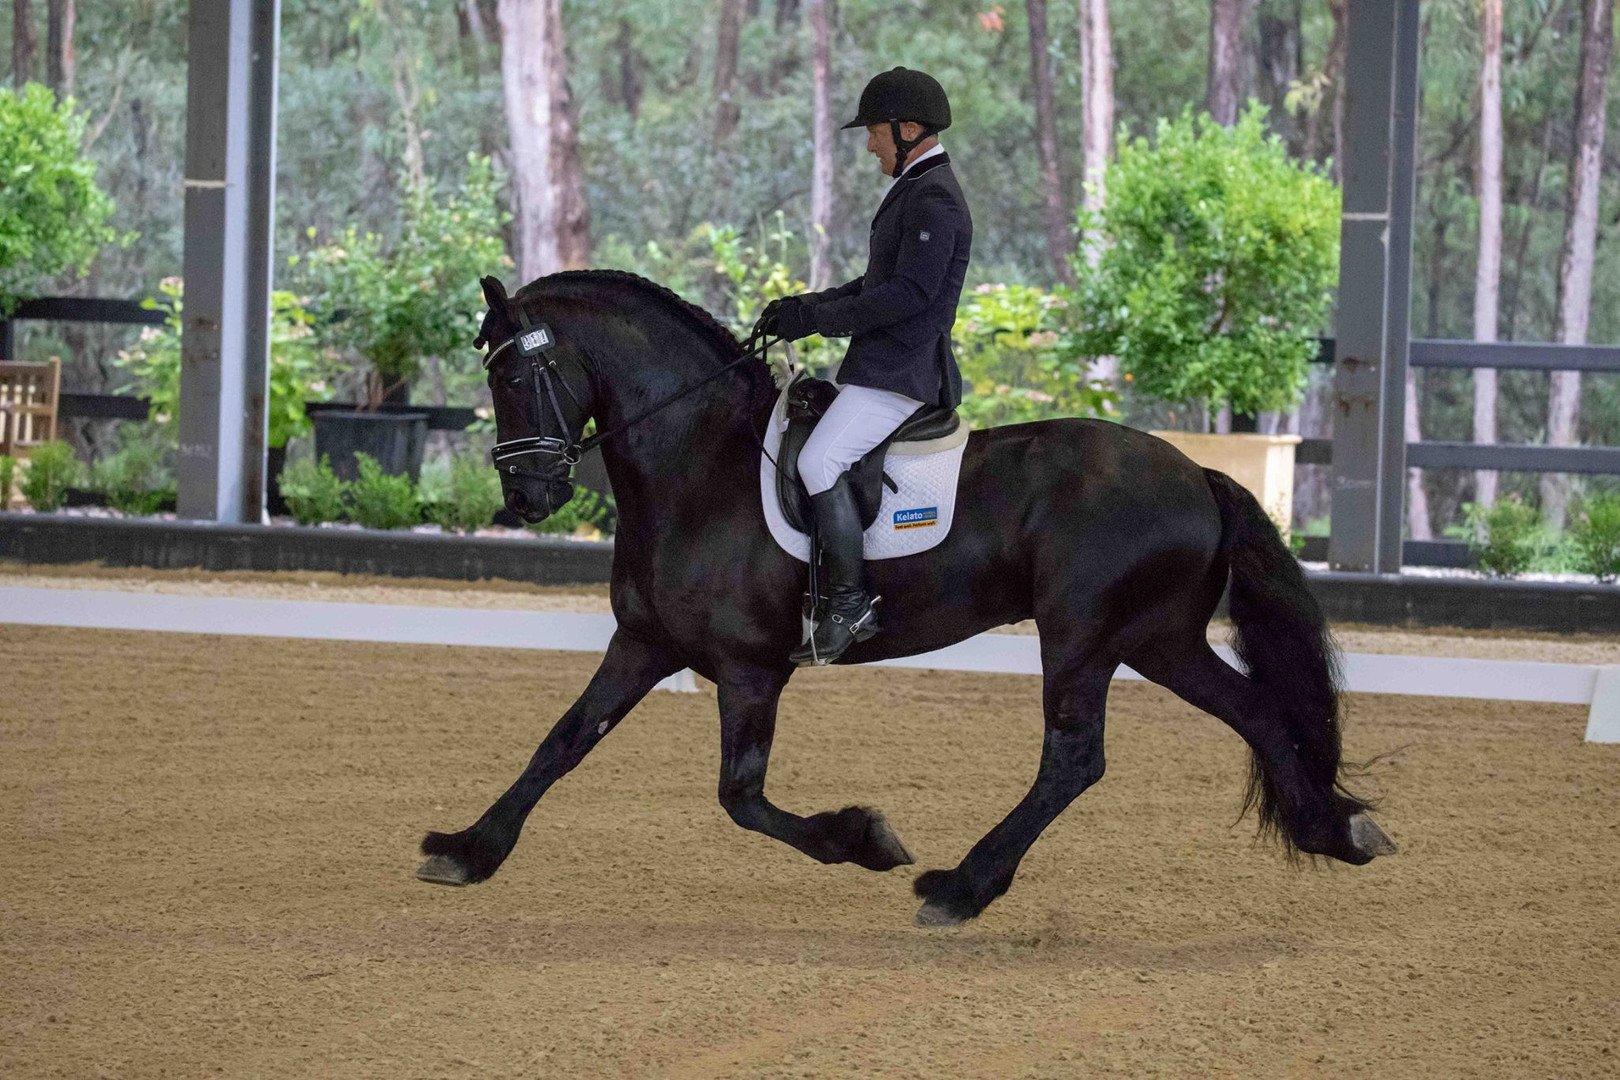 Bastiaan 510 under saddle